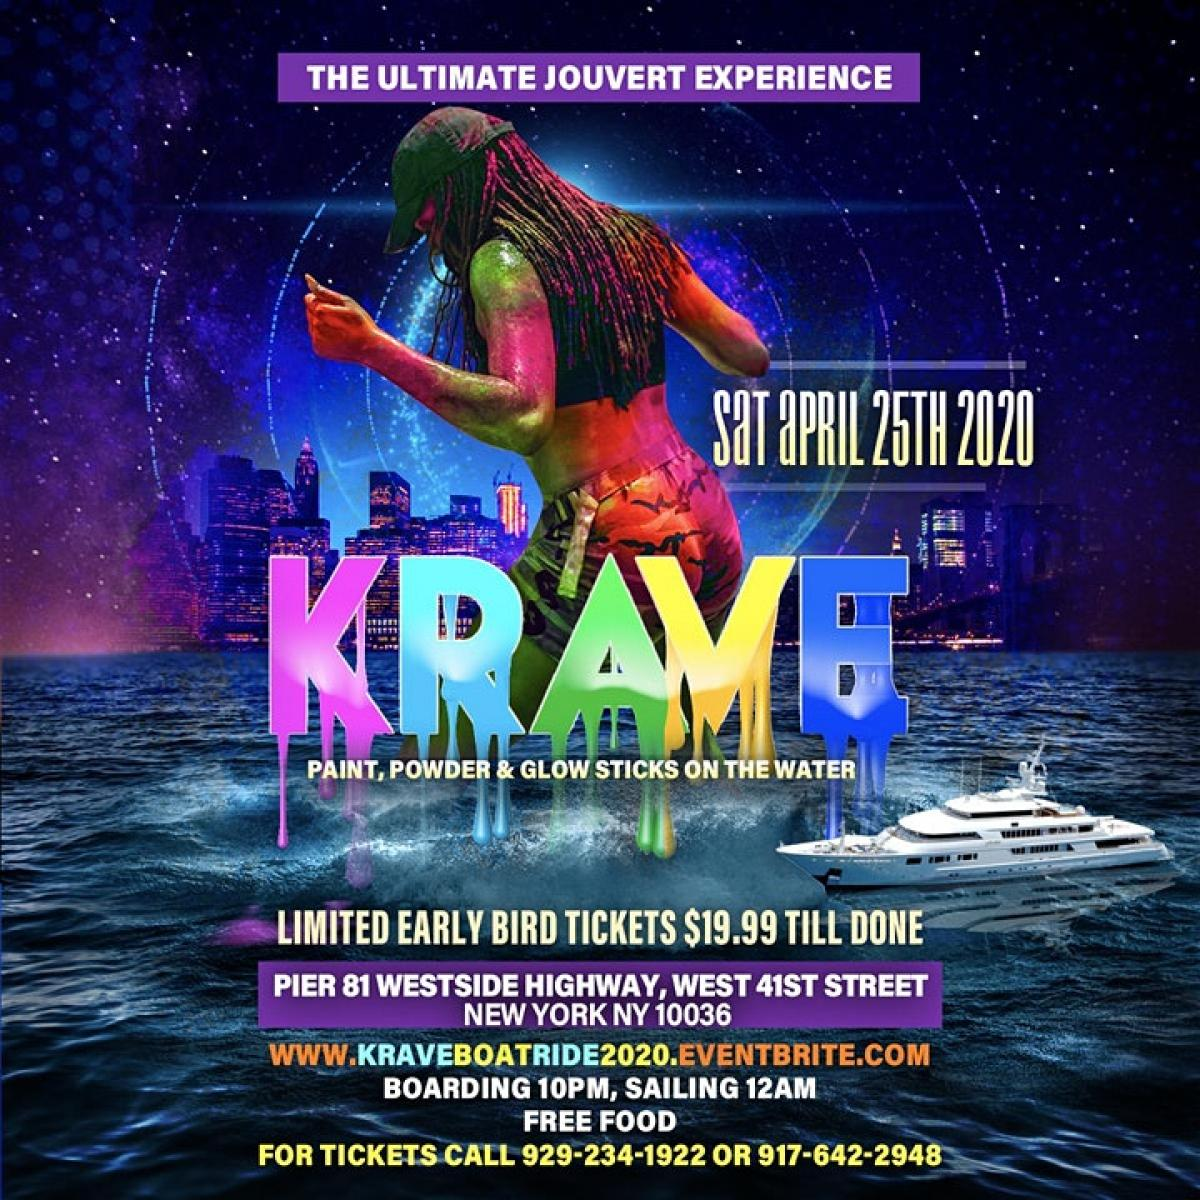 Krave Boat Ride flyer or graphic.